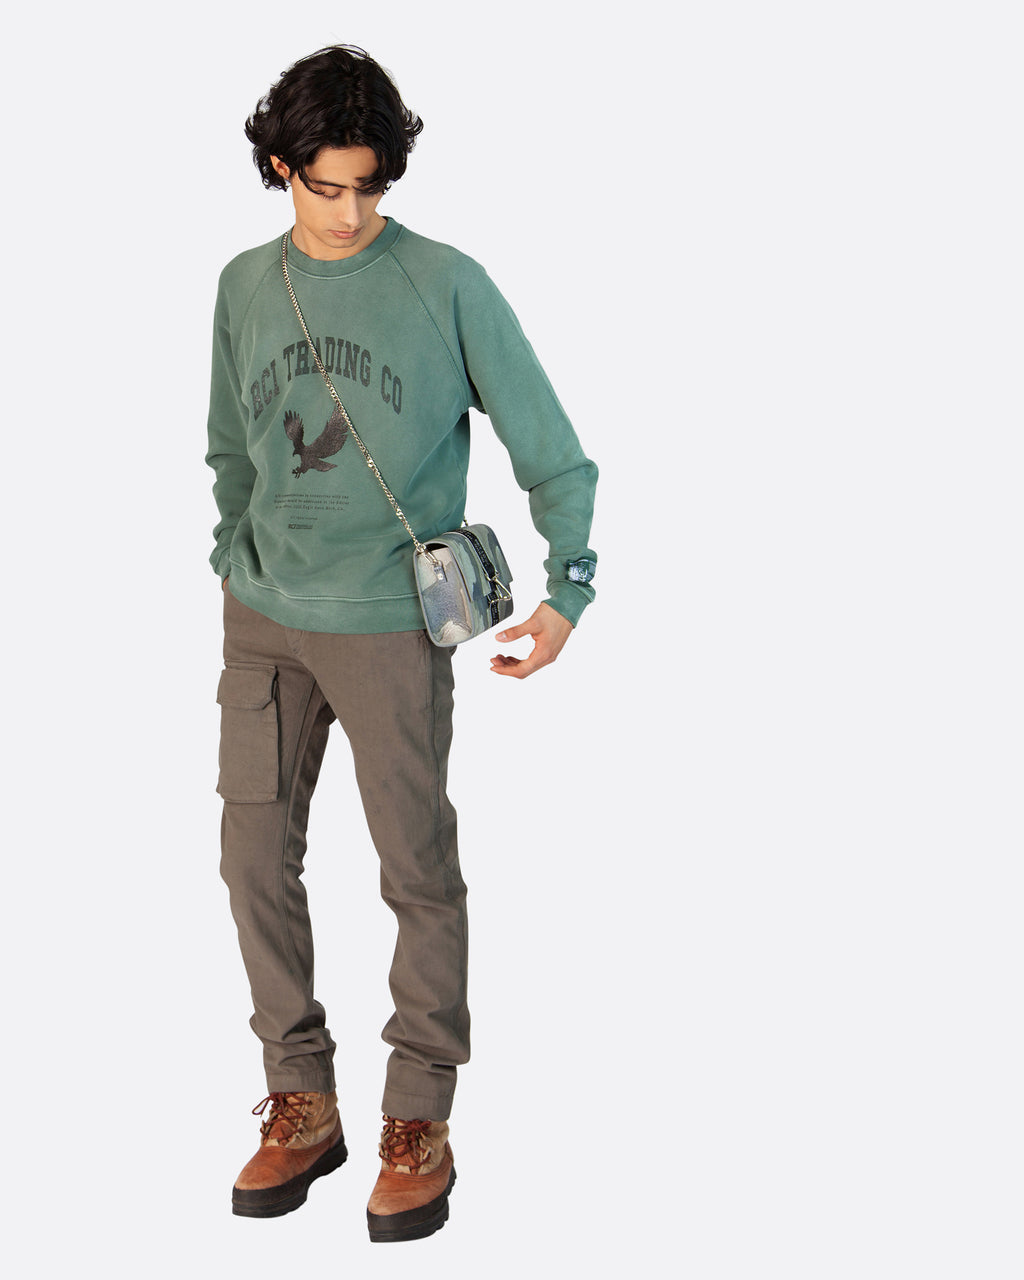 RCI Eagle Aged Crewneck Sweatshirt in Green